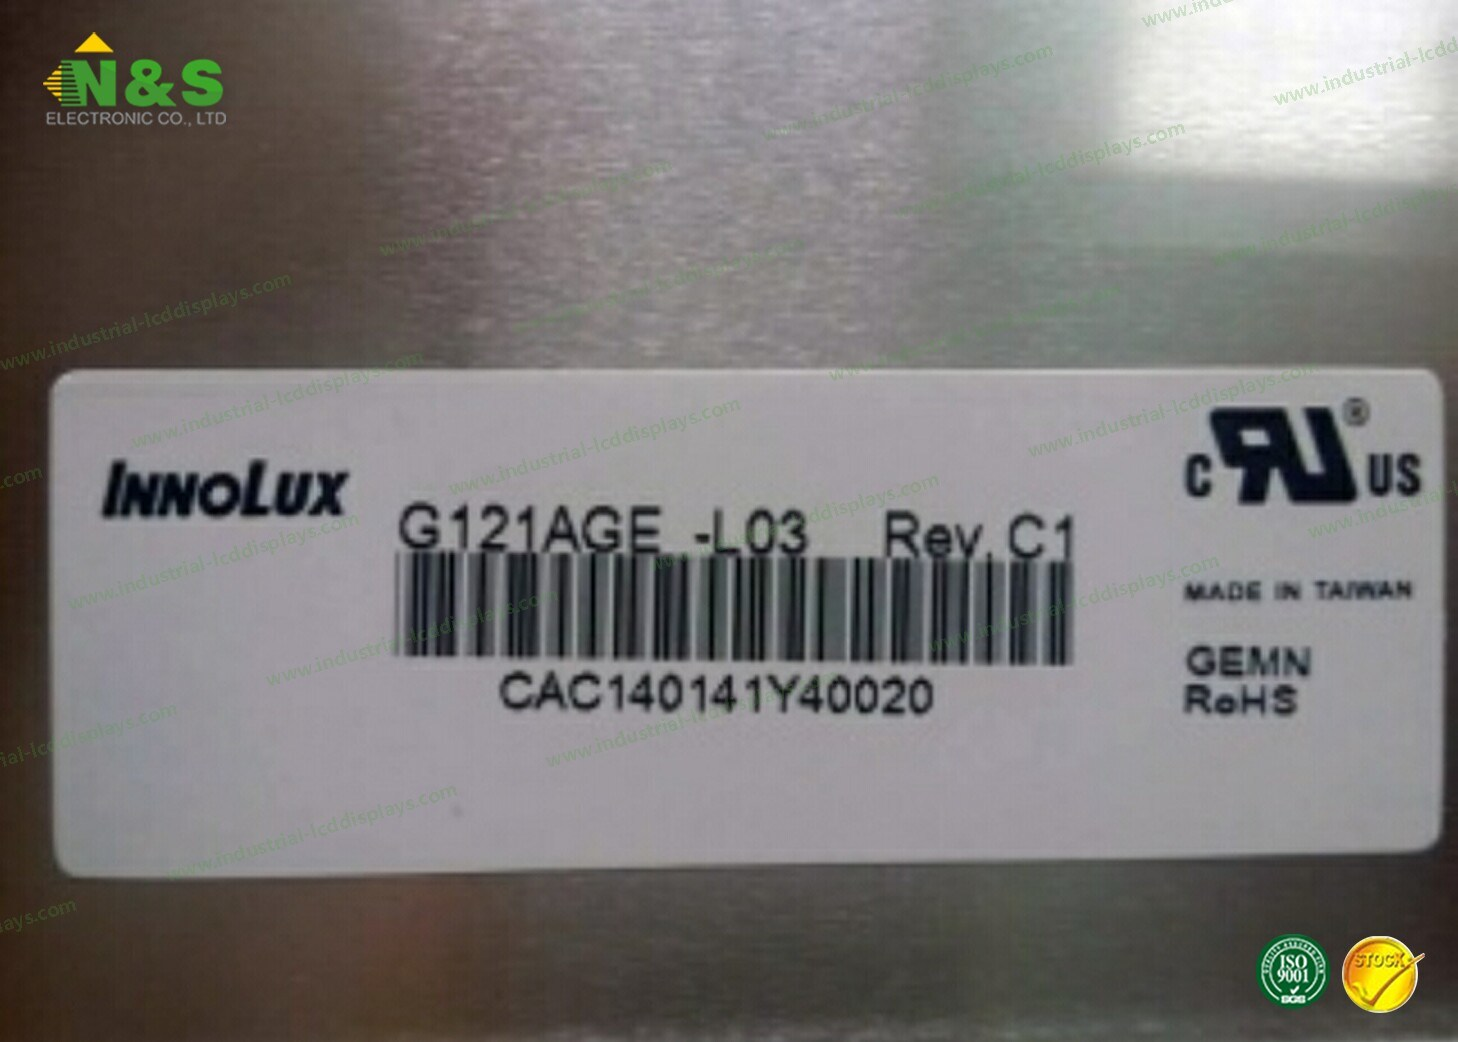 G121age-L03 12.1 Inch LCD Display Module pictures & photos